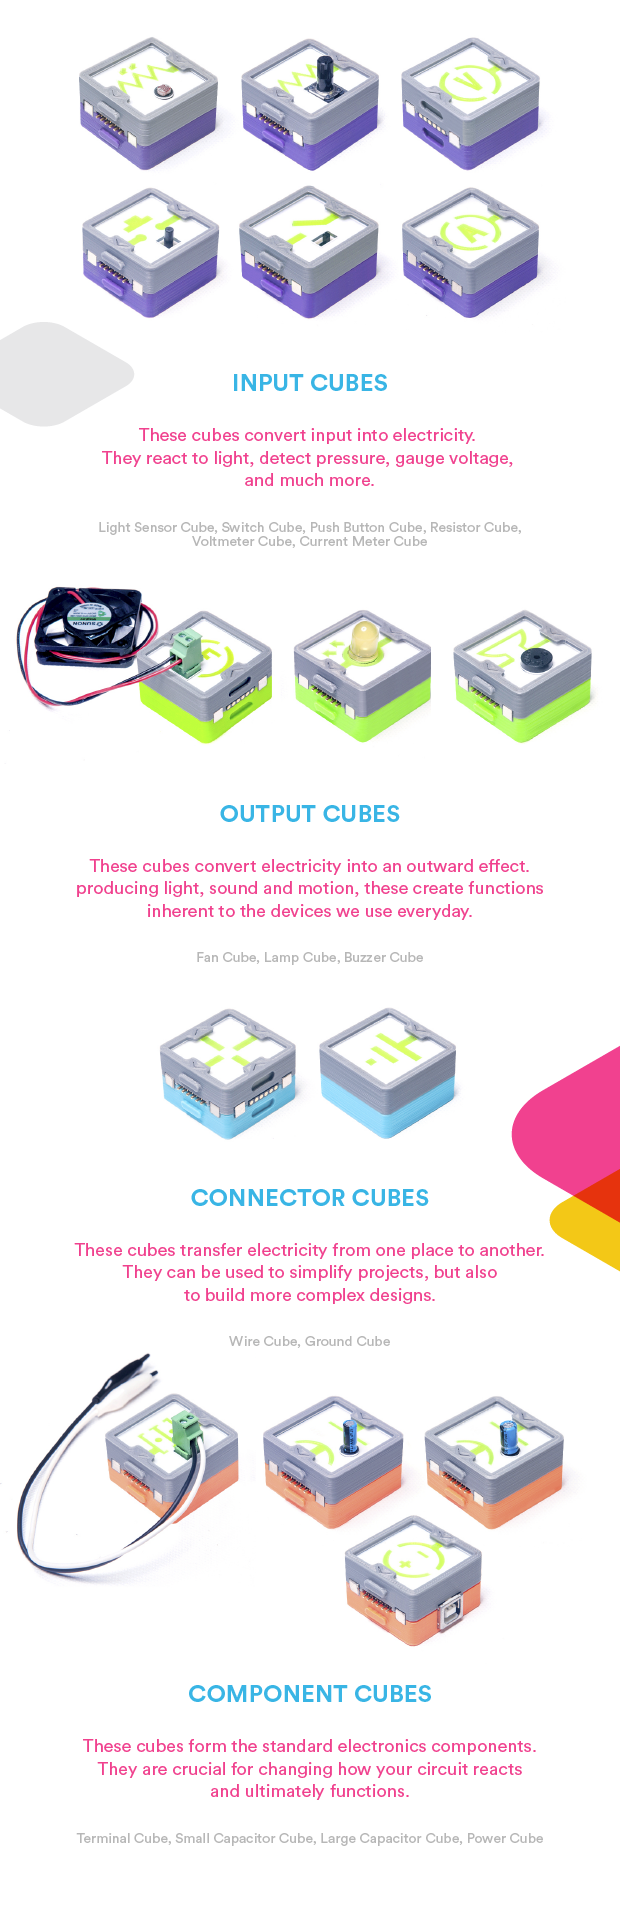 Iqube The Ultimate Toy For Learning Electronics Indiegogo First Circuit Has One Cell An Ammeter Reading 05a And A Lamp Is Safe